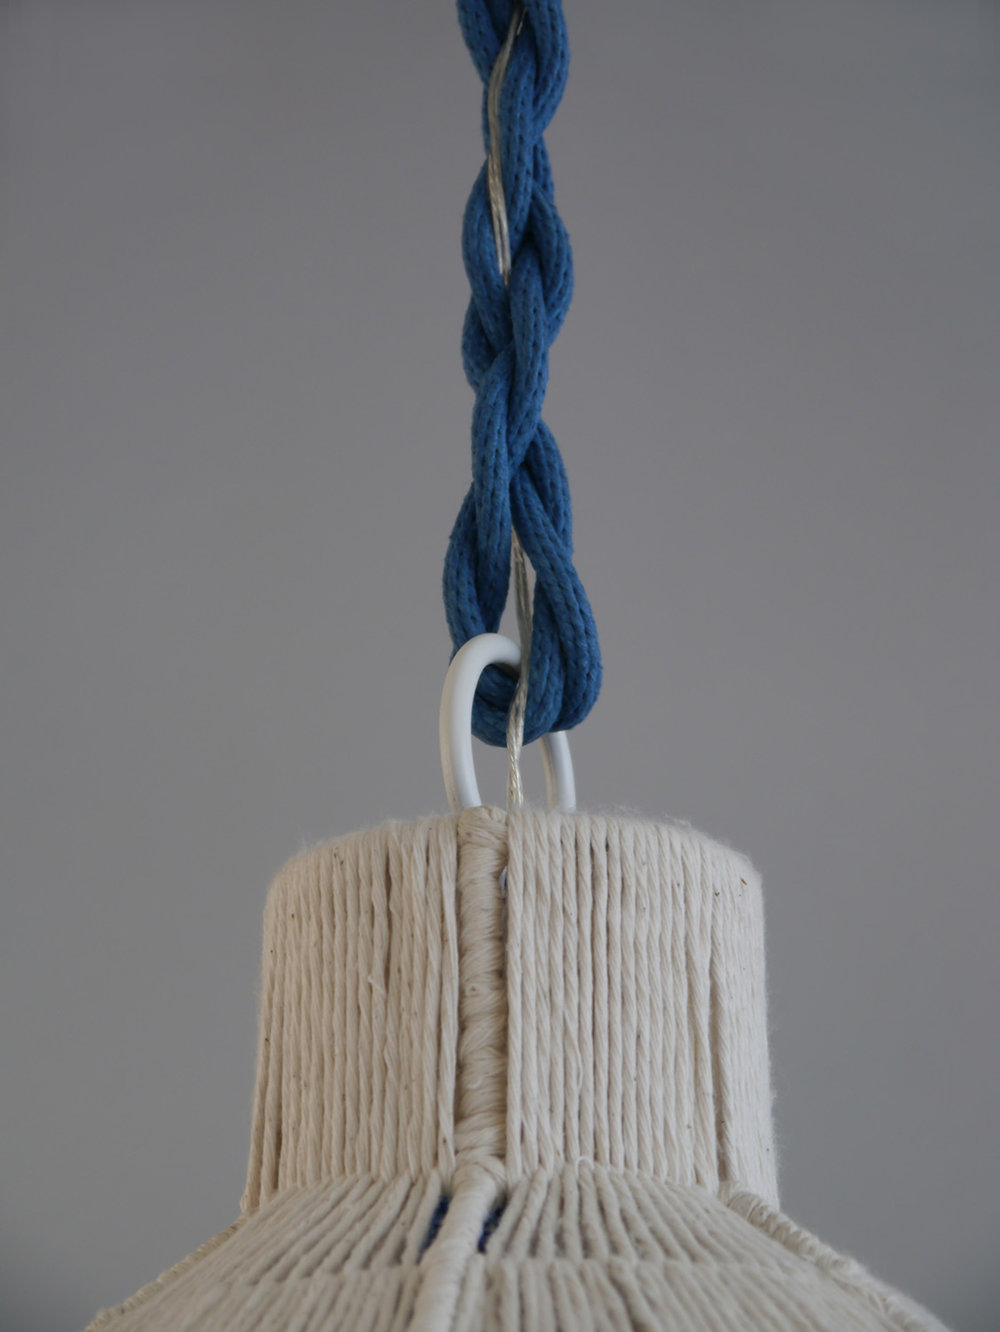 Rope_C-177_Capped Dome Rope Pendant_Cobalt Blue_close up.jpg